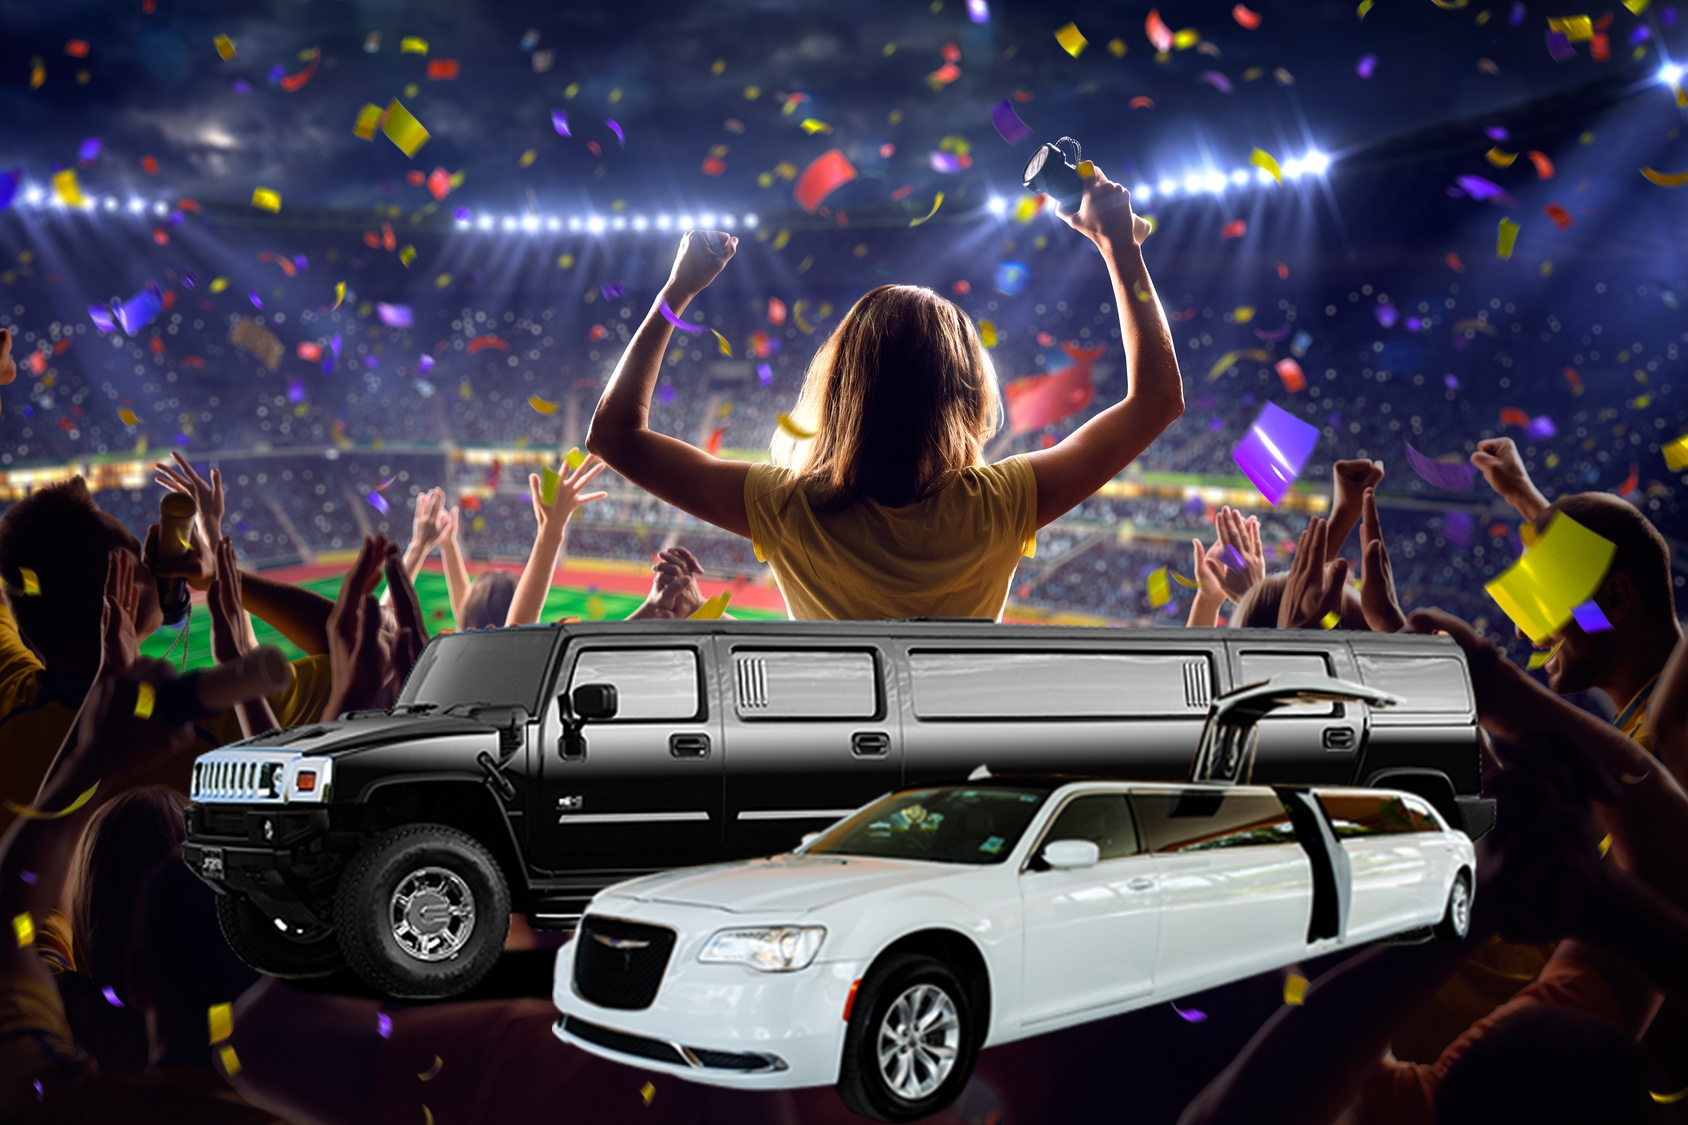 MAKE THE MOST OF CLASSY  EVENT LIMOUSINE SERVICES